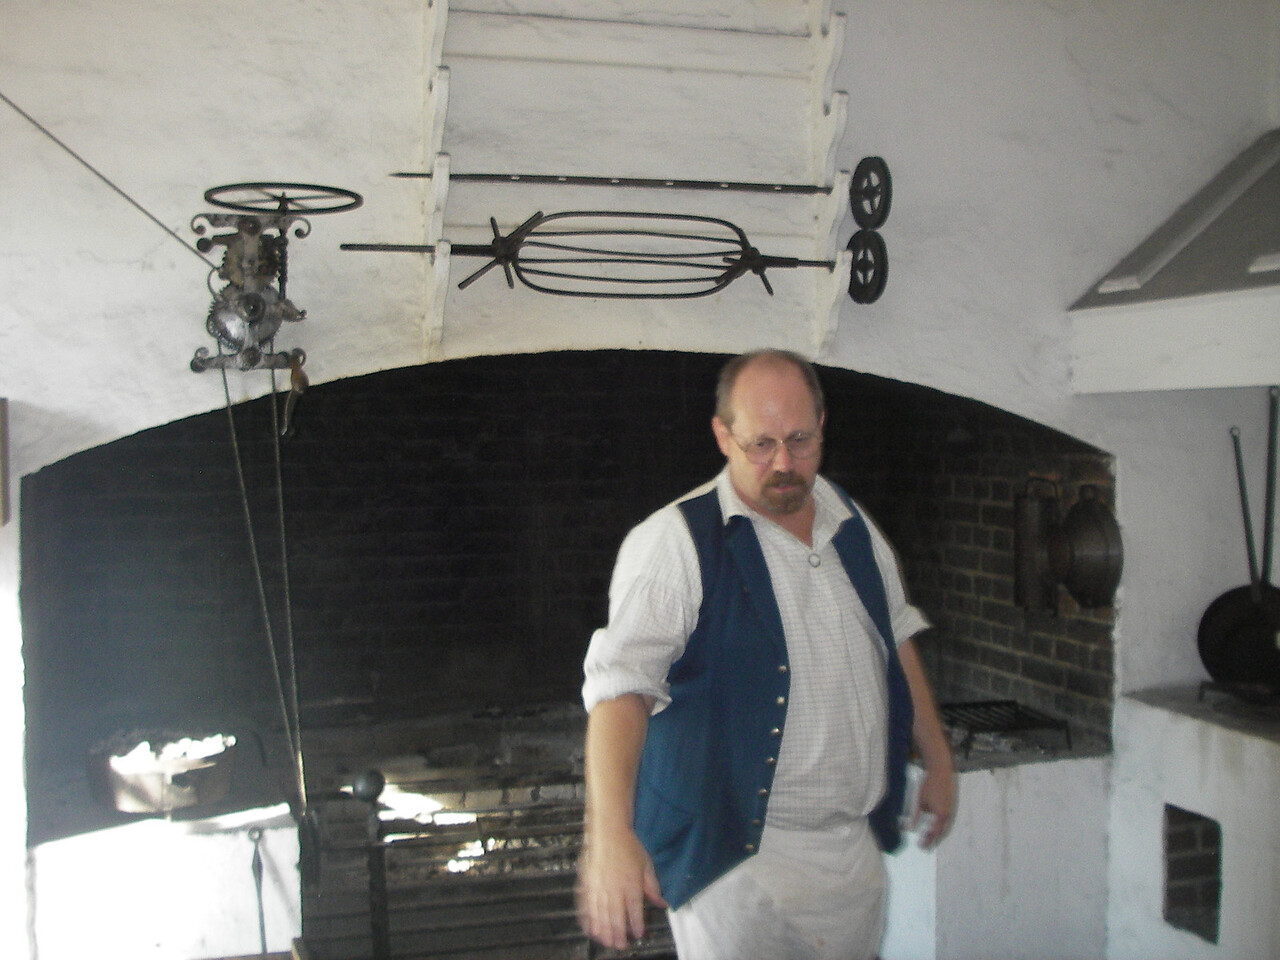 Cook in his kitchen of the Governor's Mansion